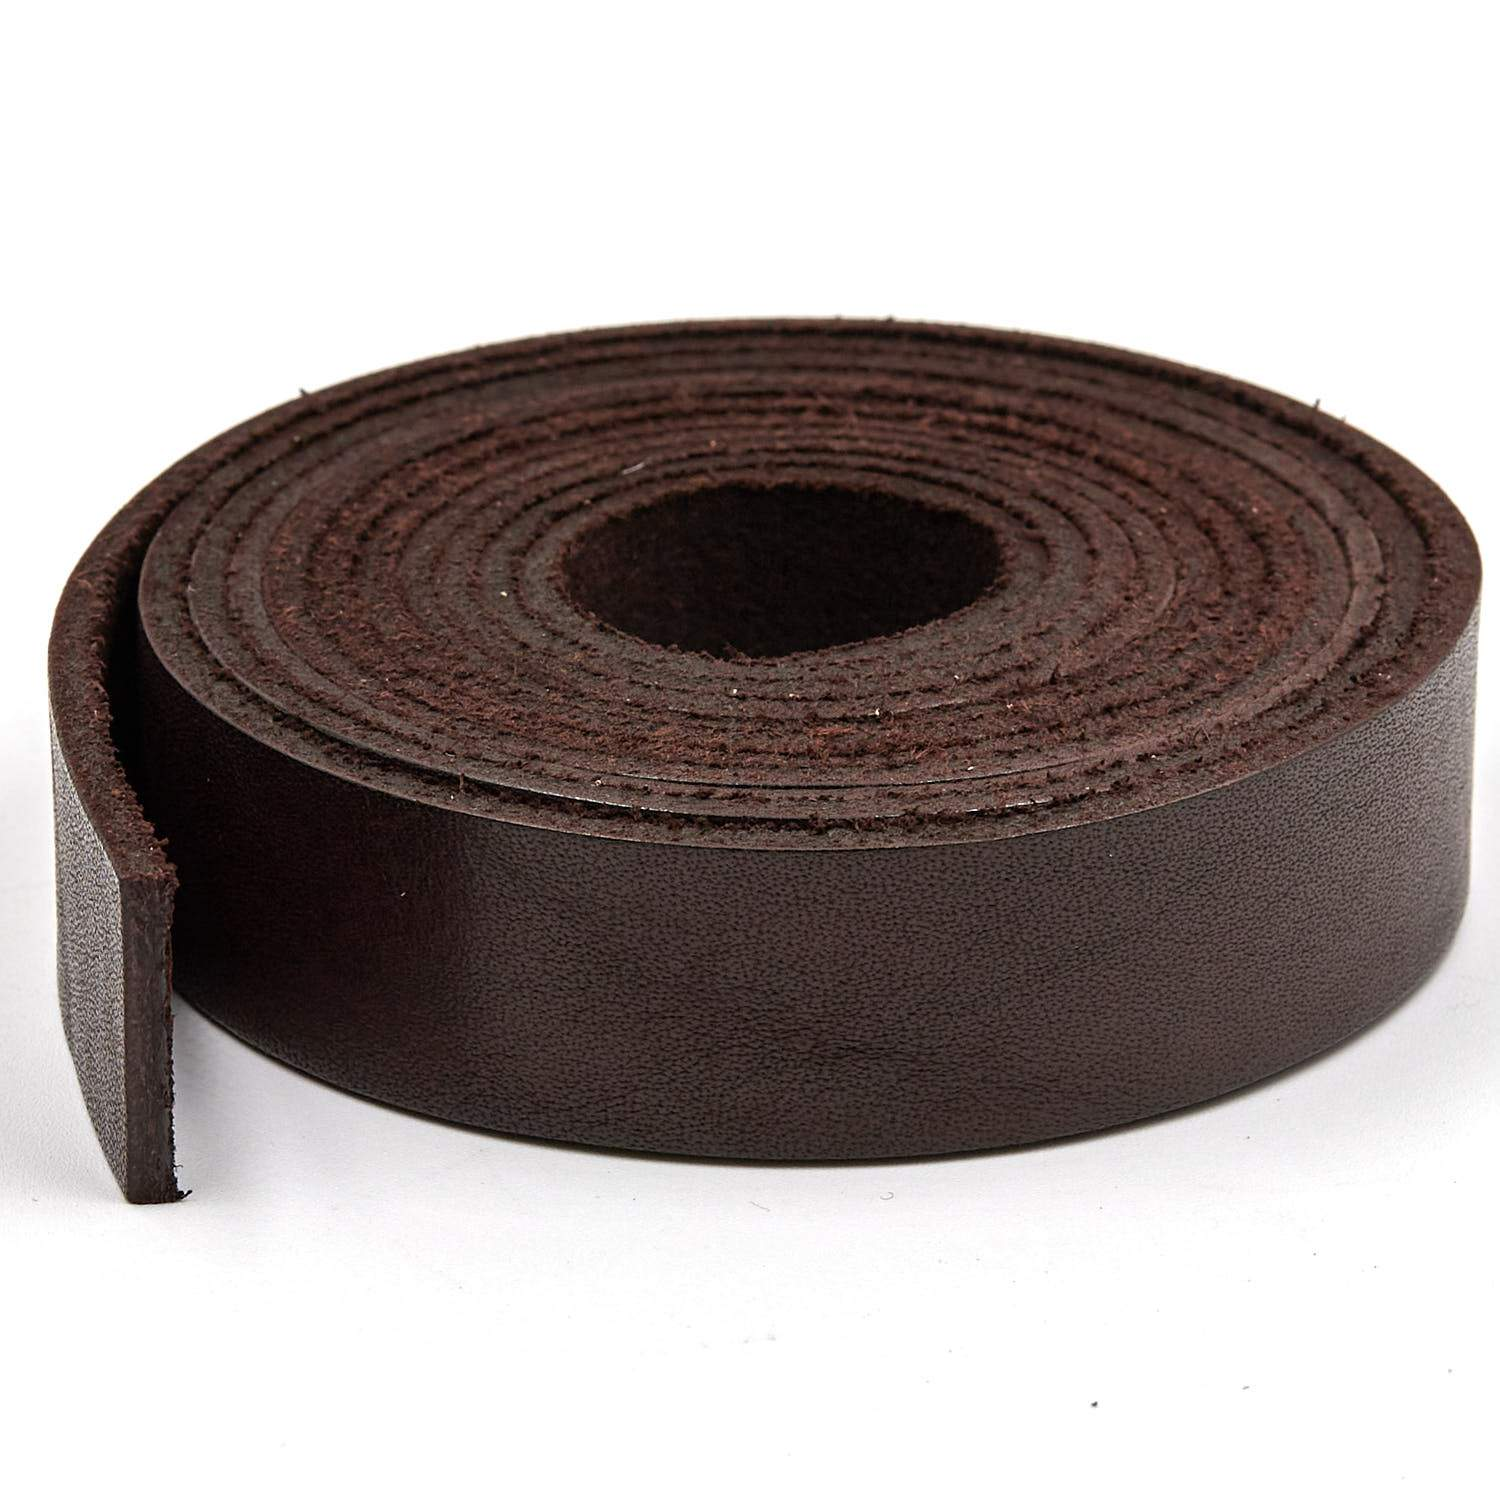 Gaucho Goods Flat Leather Strap 3/4 Inch Wide, 72 Inches Long - Gaucho Goods